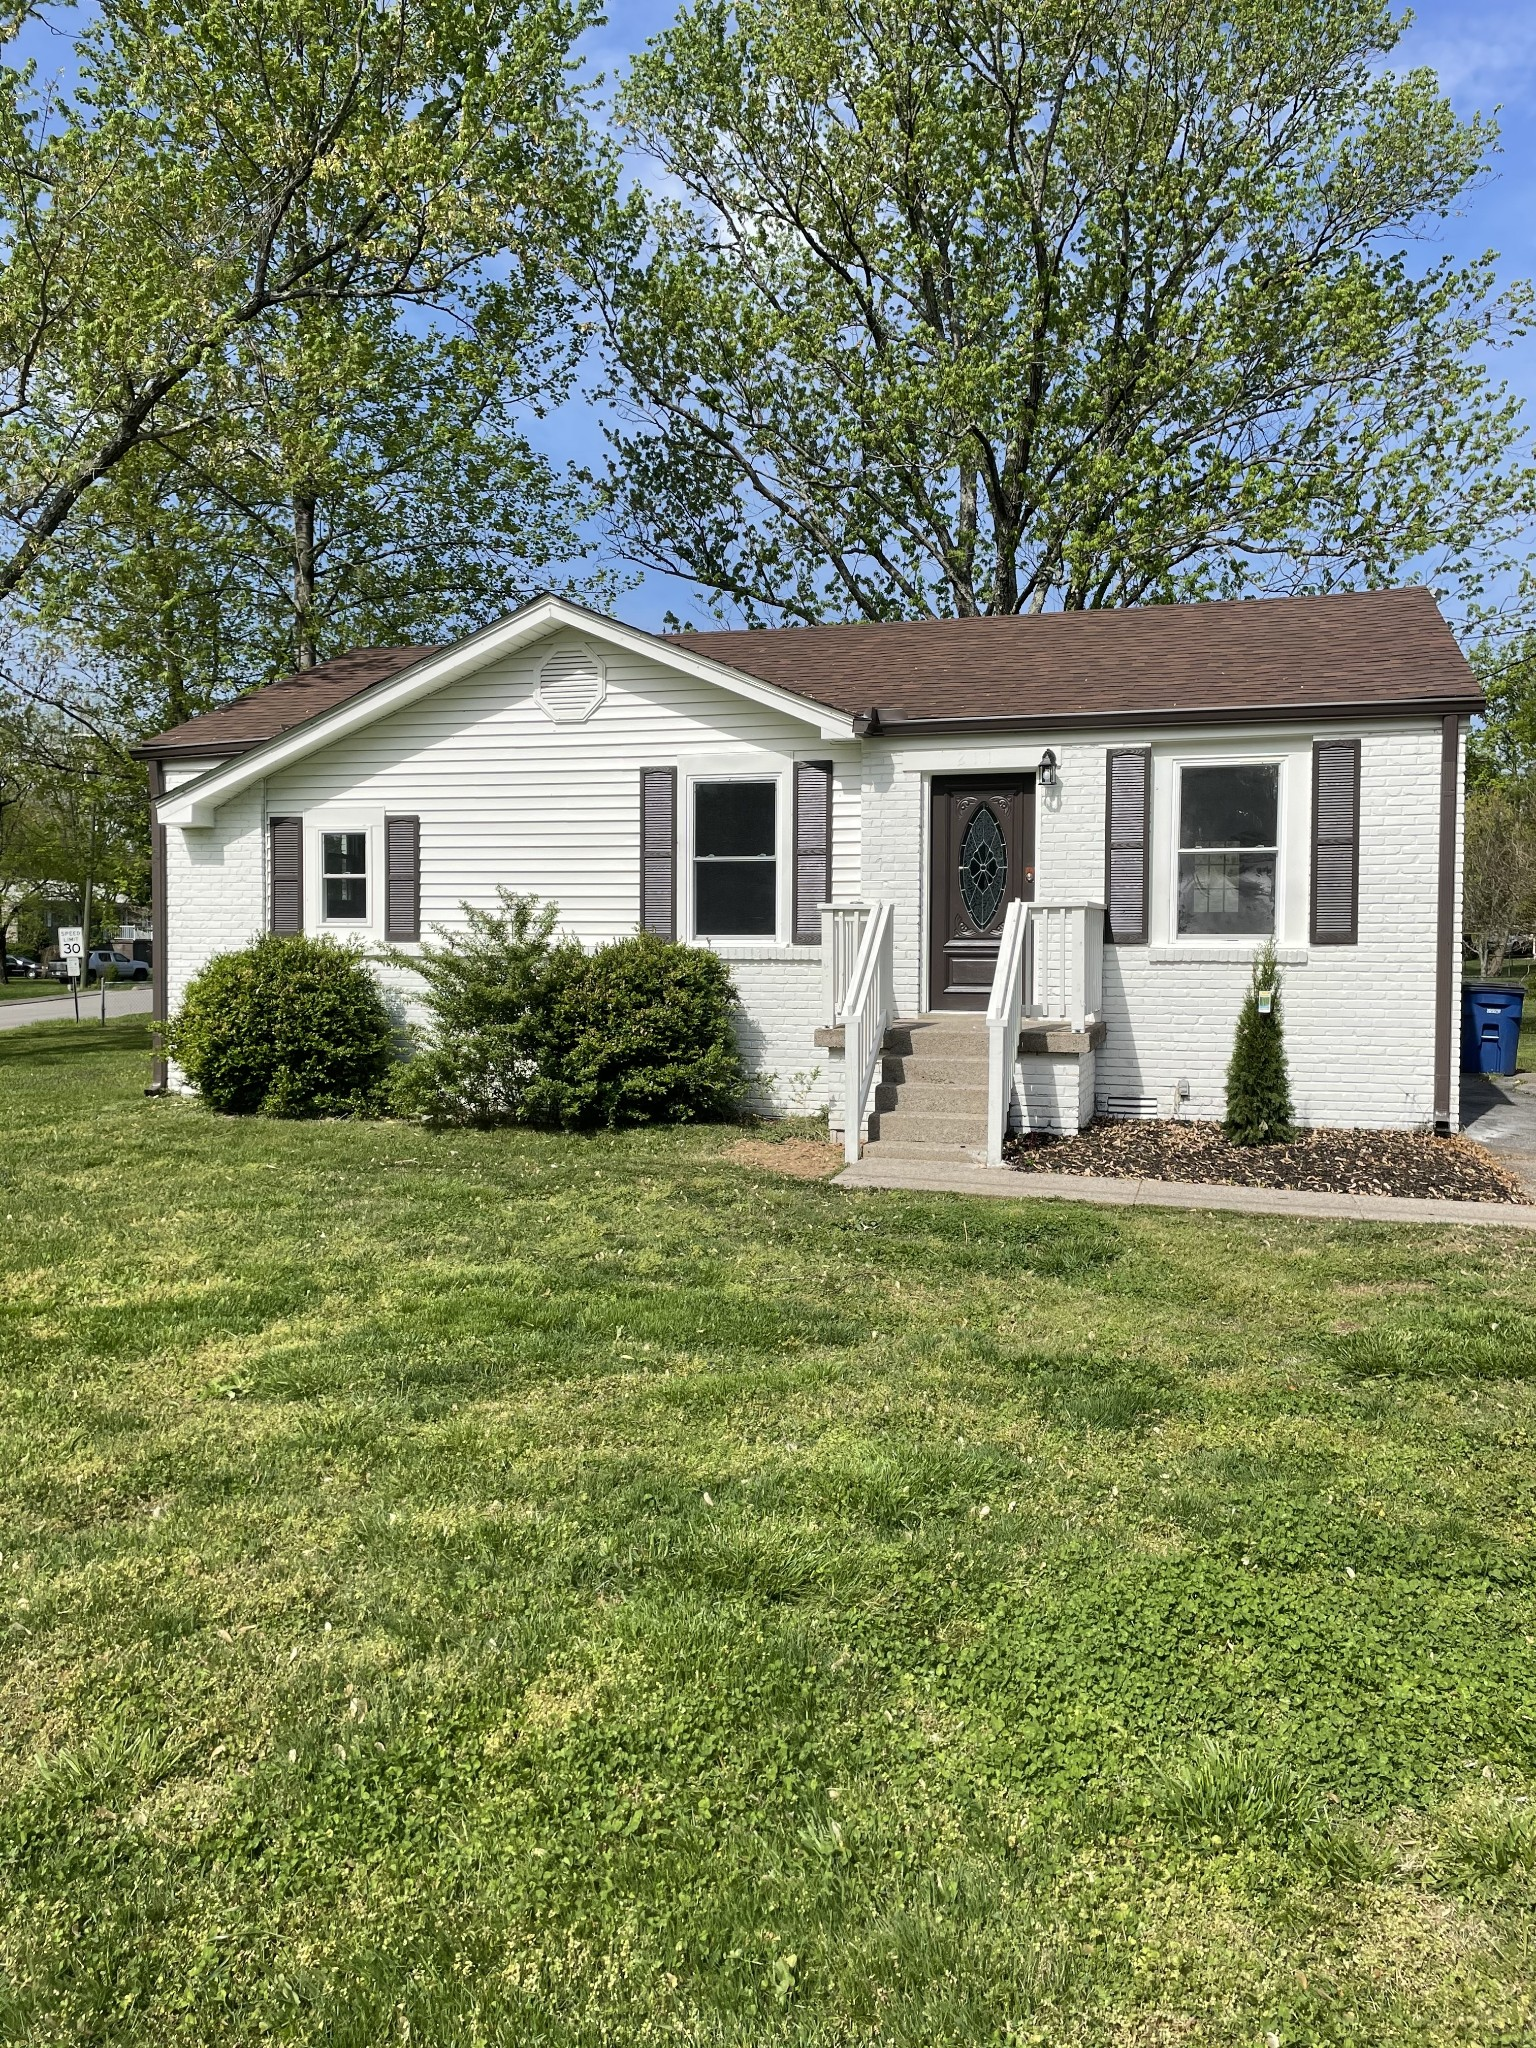 211 Monticello Ave Property Photo - Goodlettsville, TN real estate listing